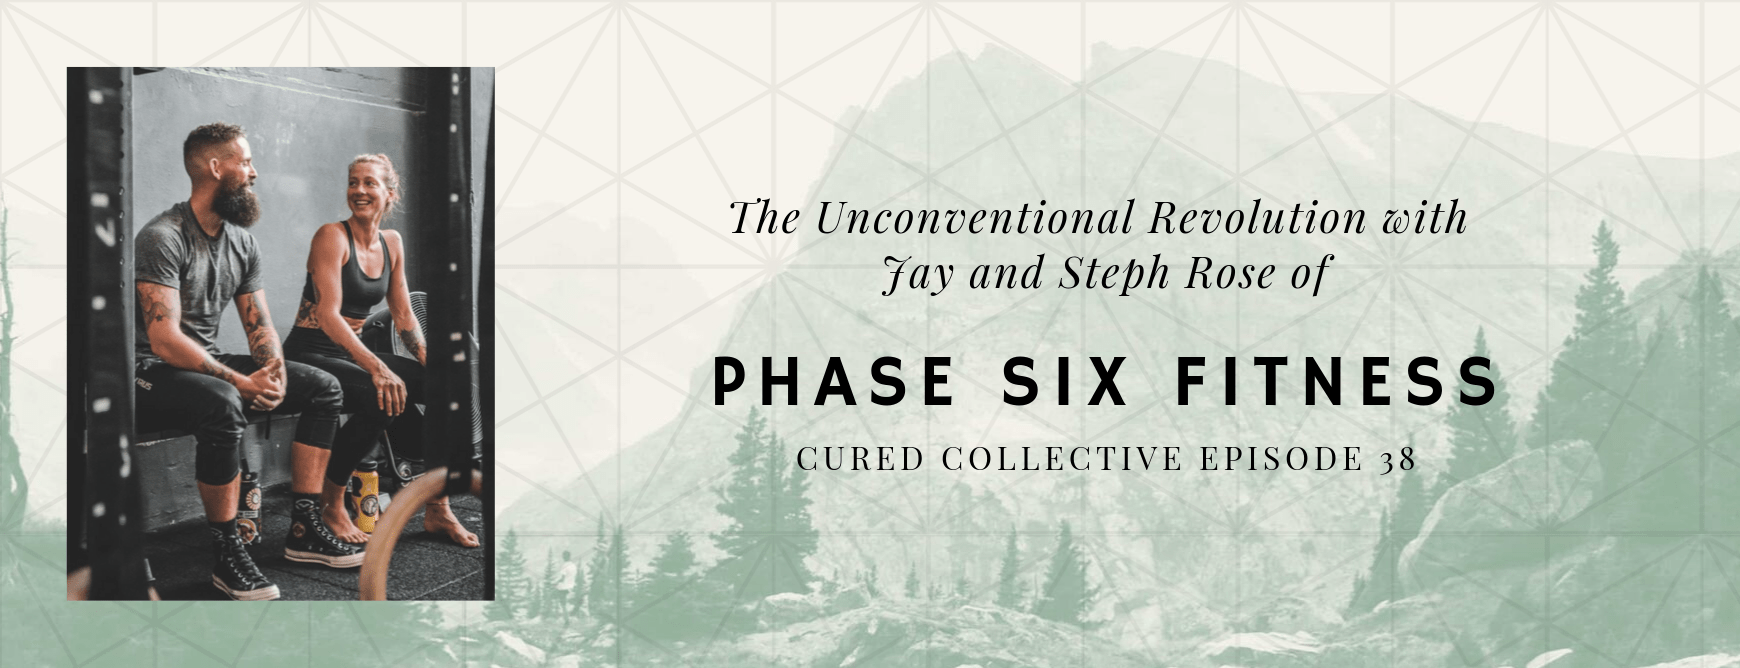 Cured Collective CBD Podcast with Phase Six Fitness